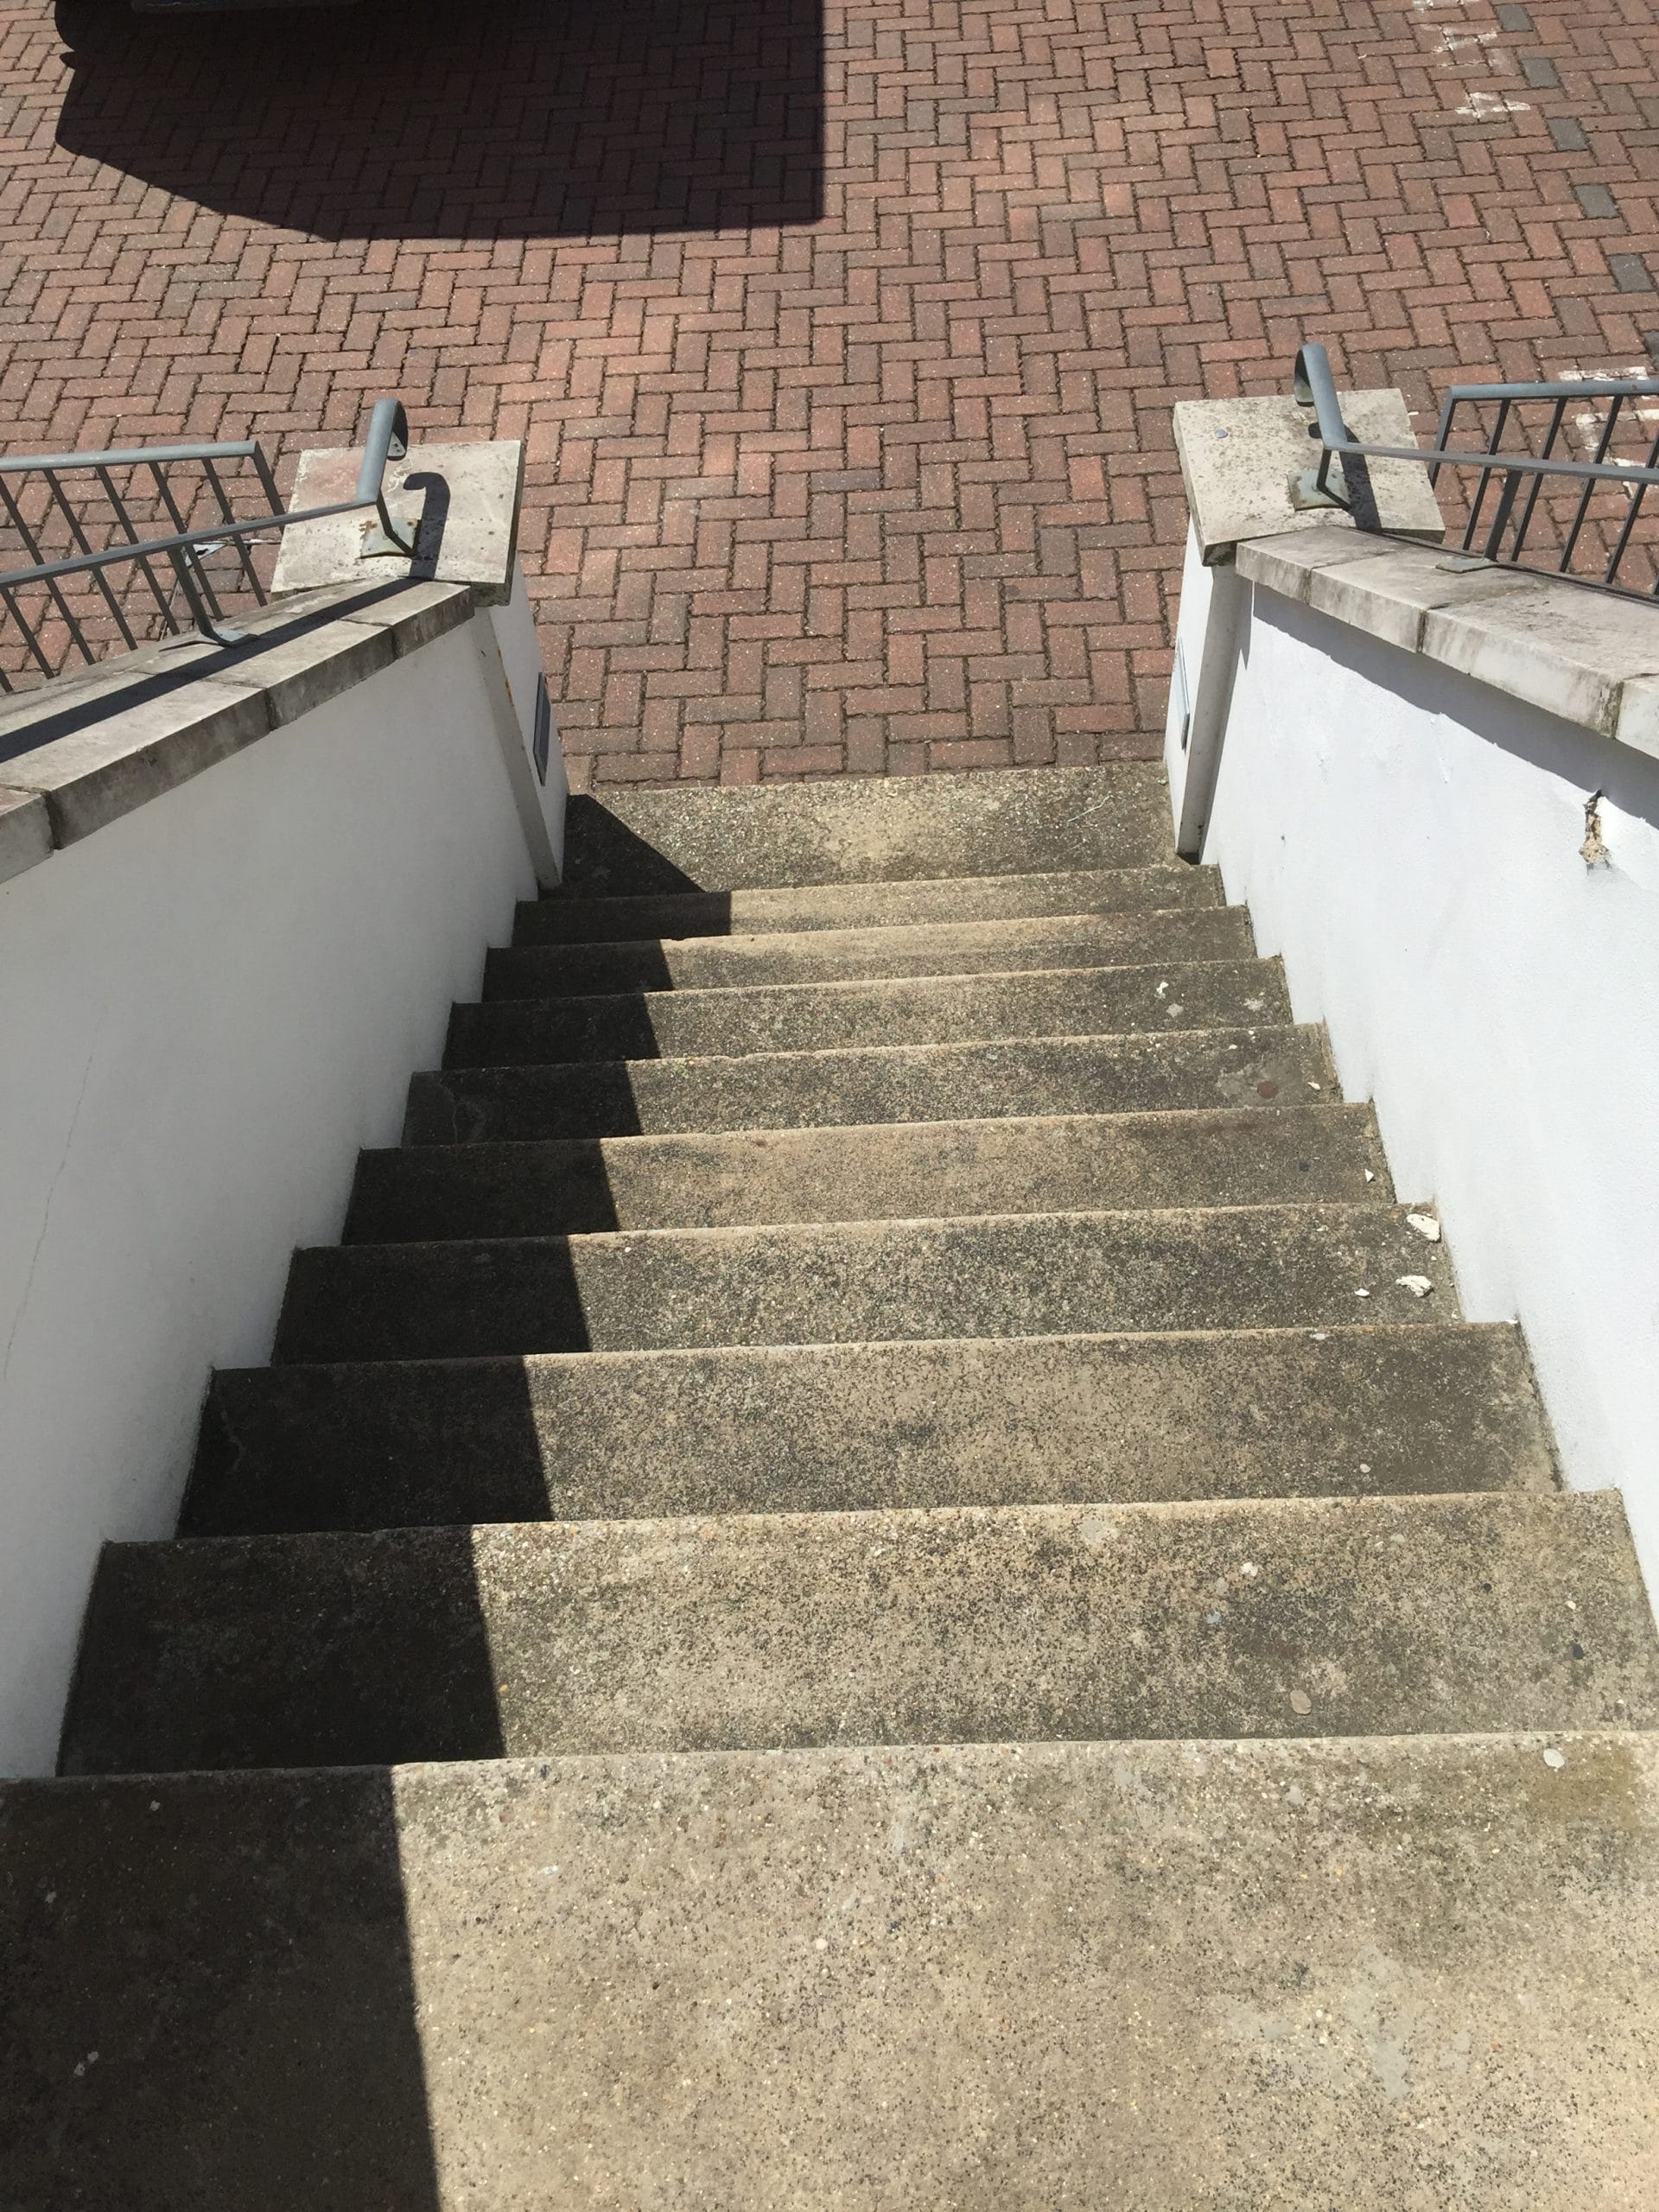 The Steps at Widmore Road